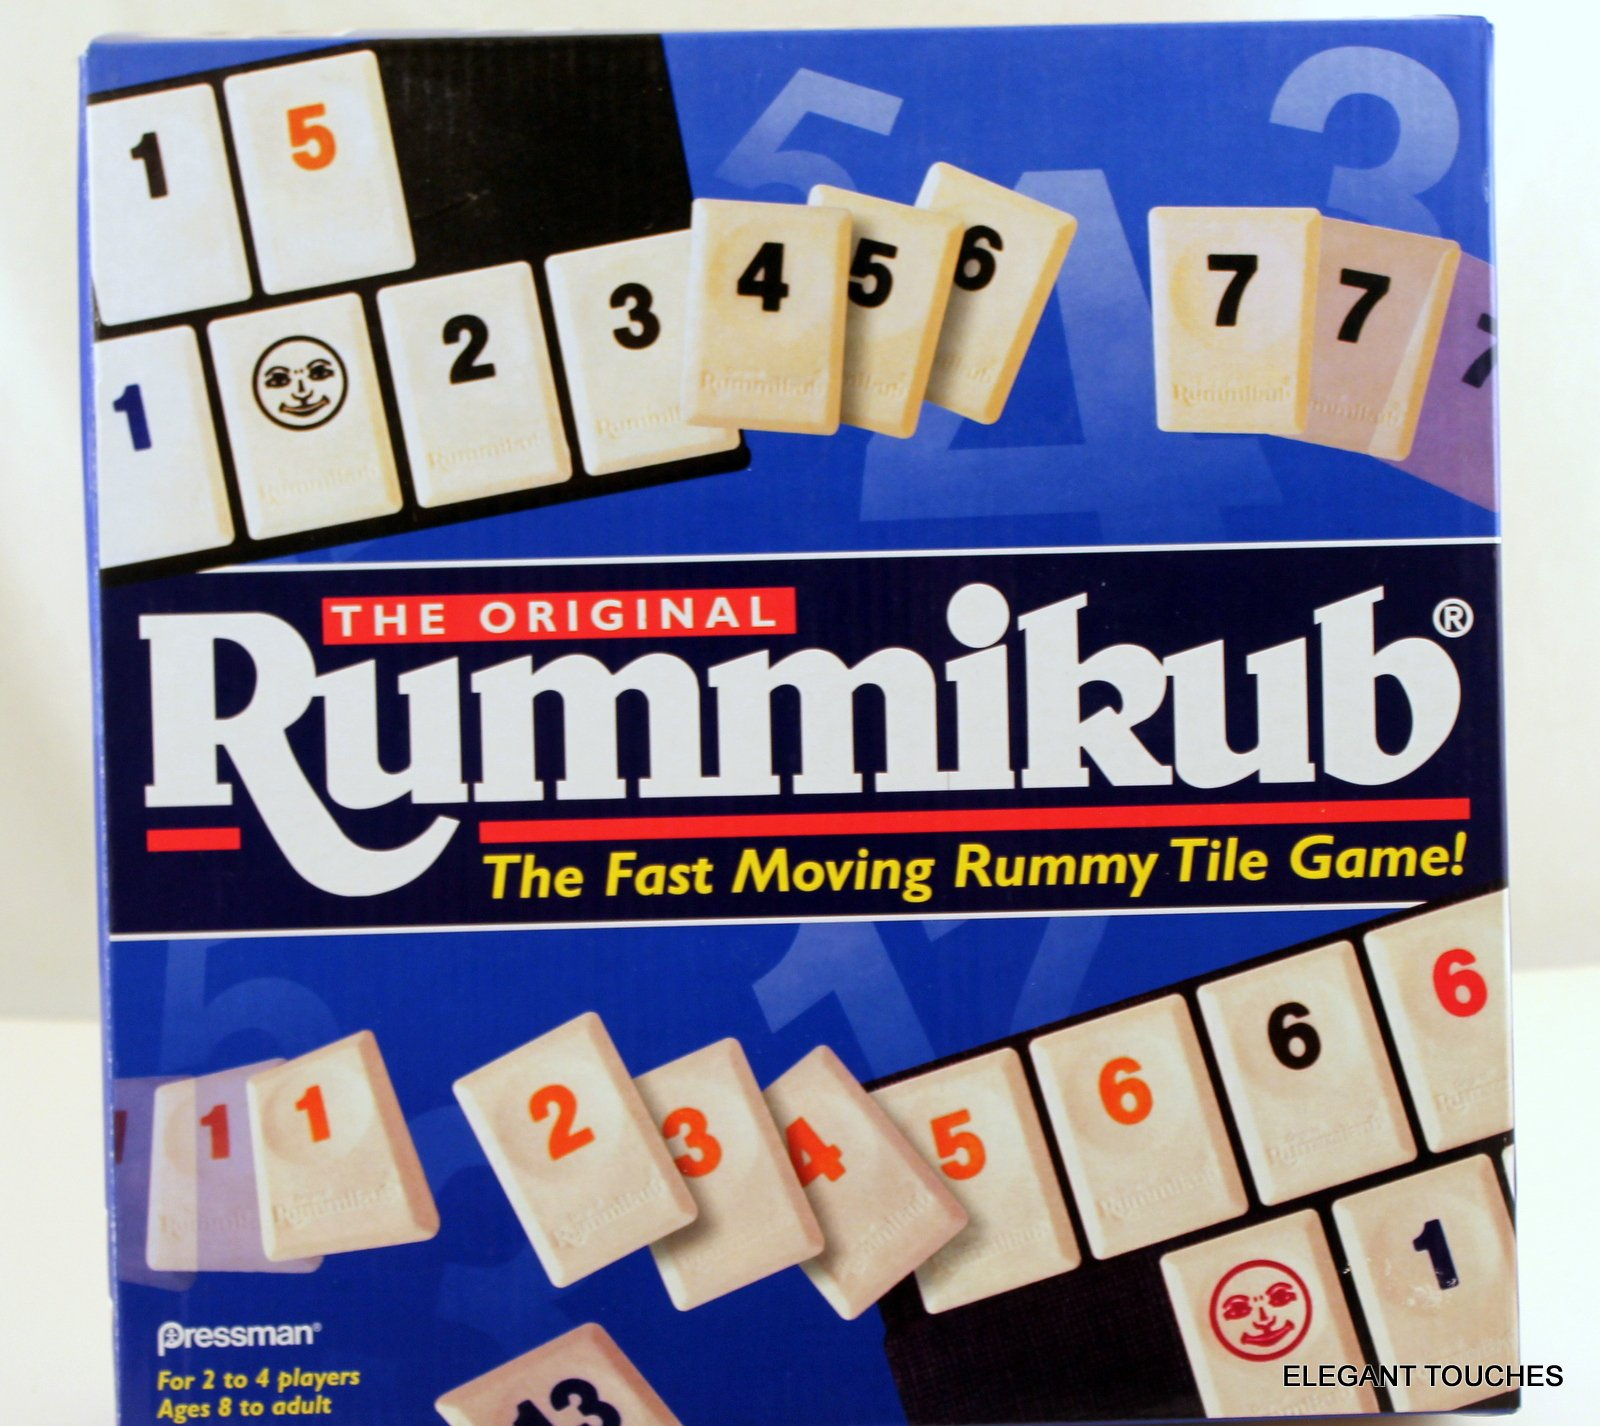 The Original Rummikub - Fast Moving Rummy Tile Game by PRESSMAN TOY CORPORA by PRESSMAN TOY CORPORA: Amazon.es: Juguetes y juegos